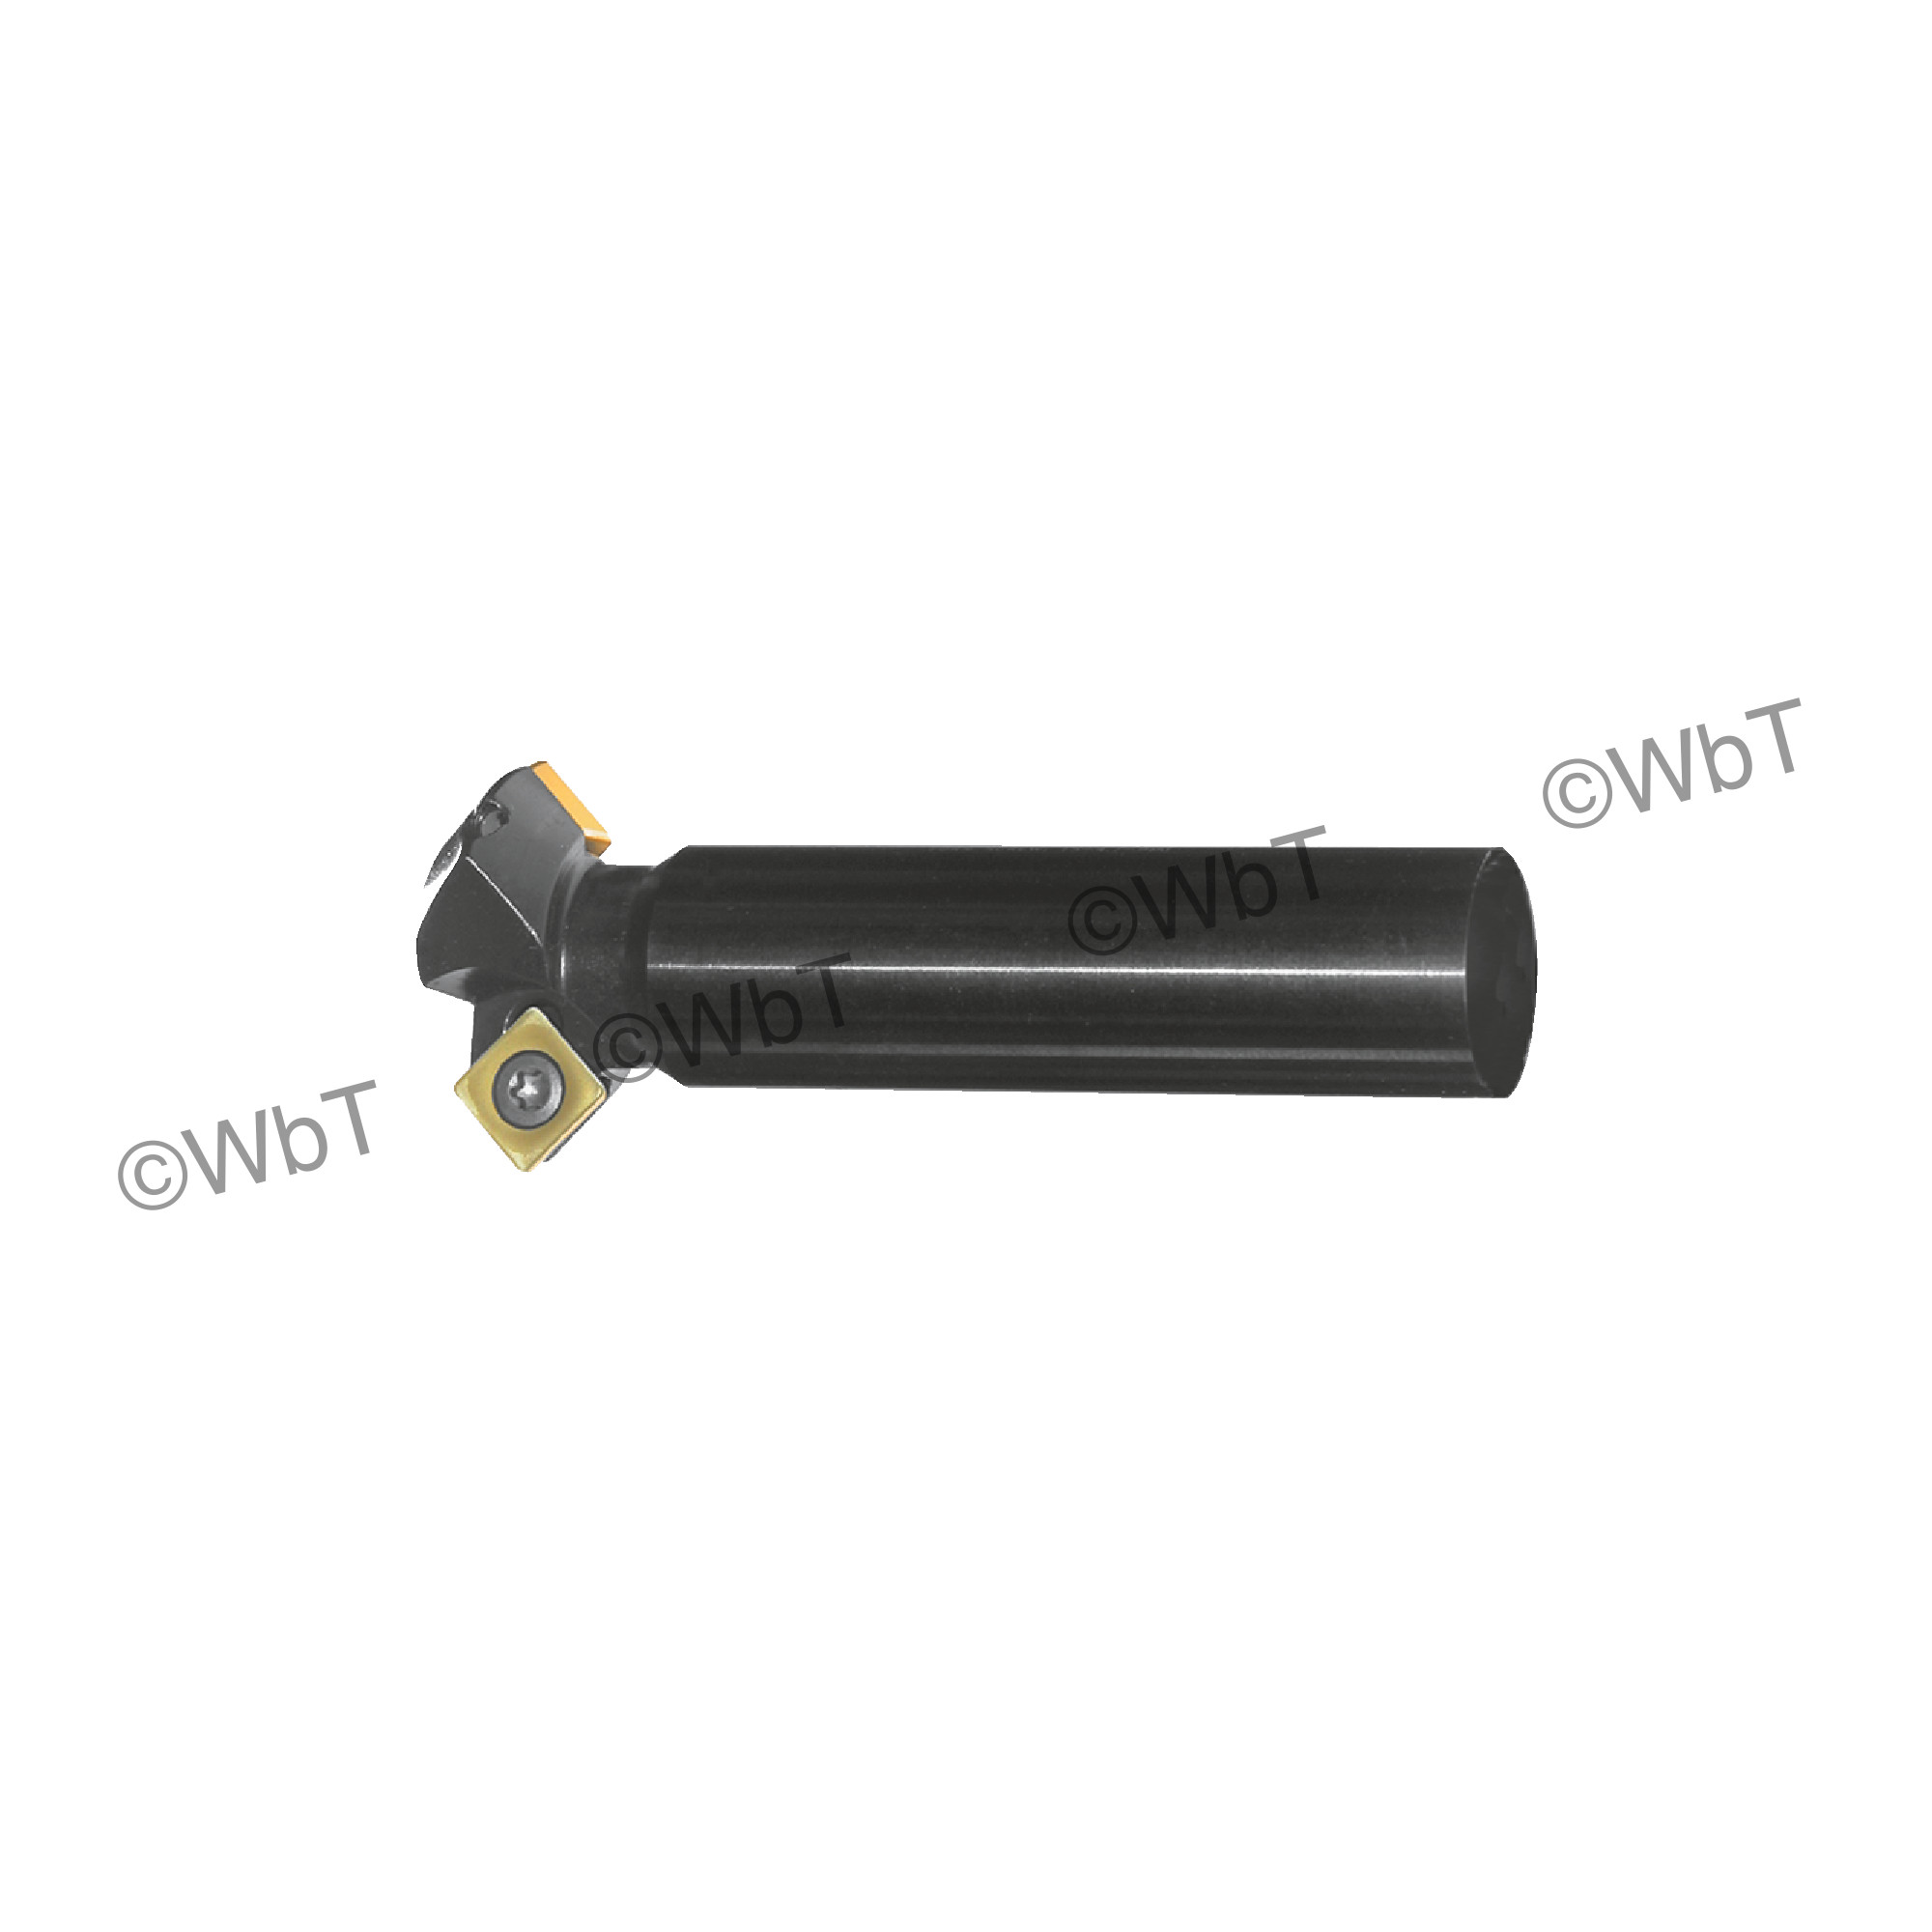 """T&O - C45-112-SD09-075 / 45° Chamfer Mill for SDHW322 / Chamfer Range: 0.625"""" - 1.125"""" / Right Hand"""